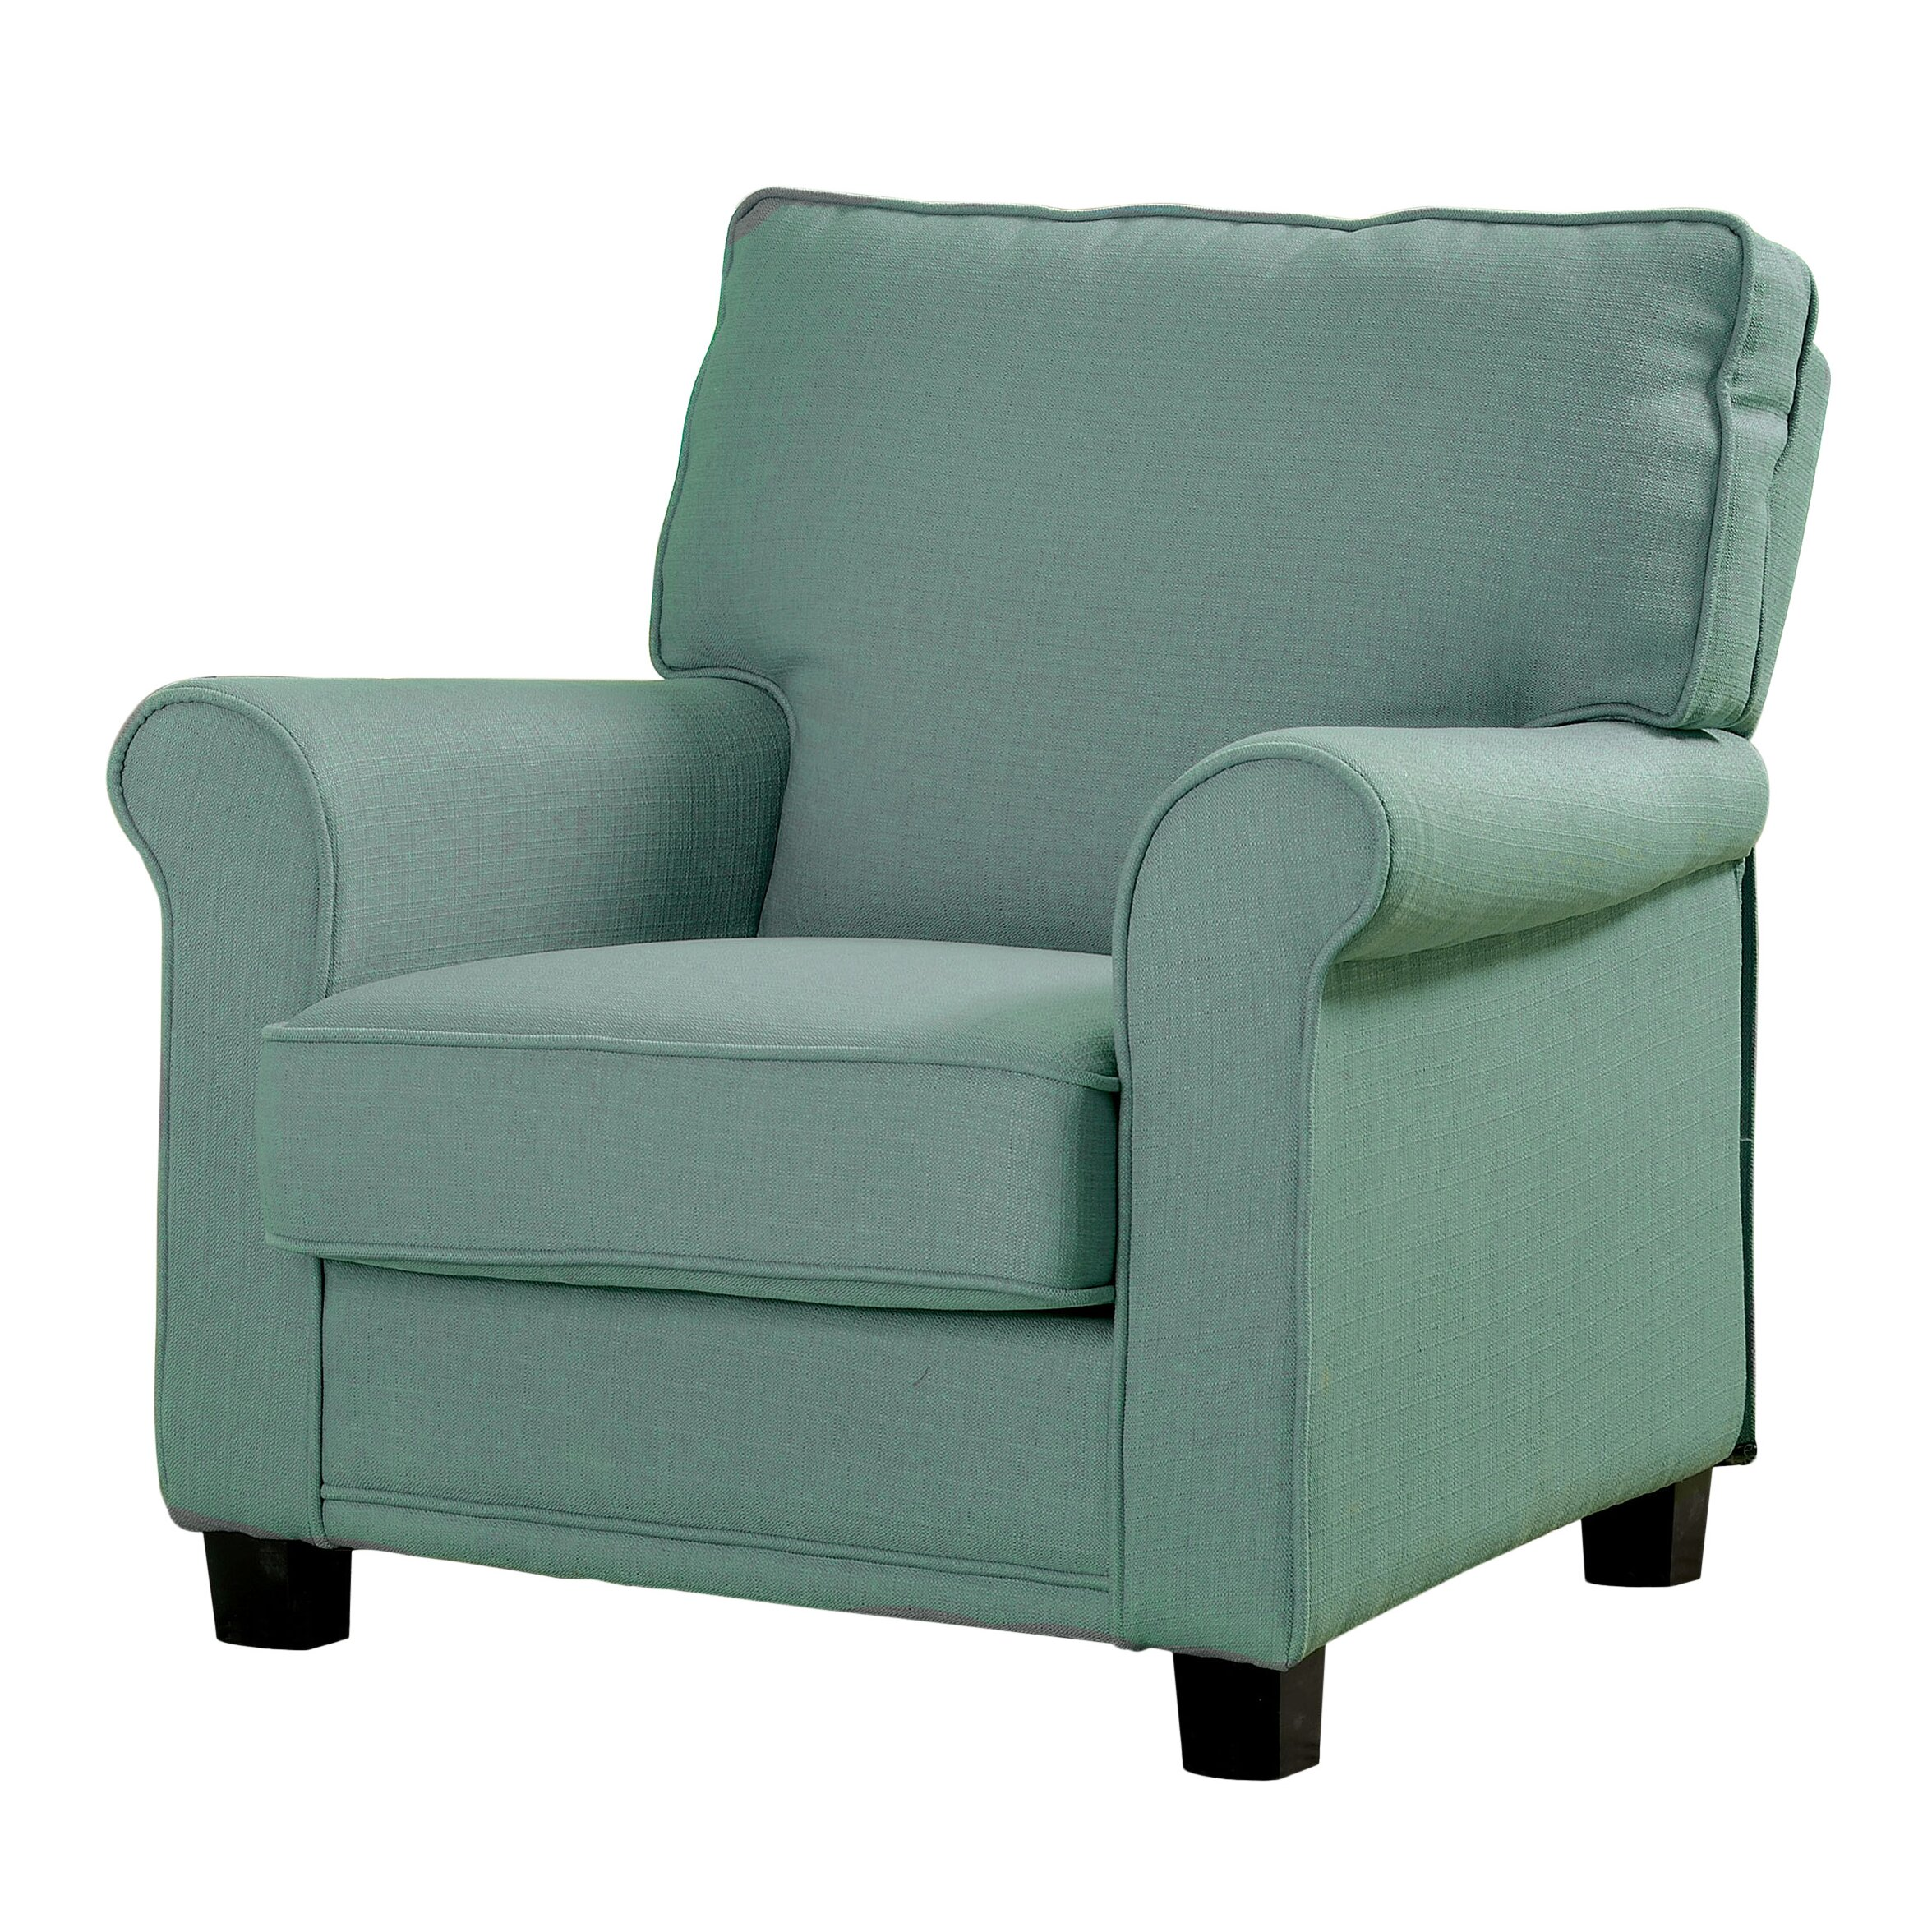 Reading Chairs for under 350 The Weathered Fox